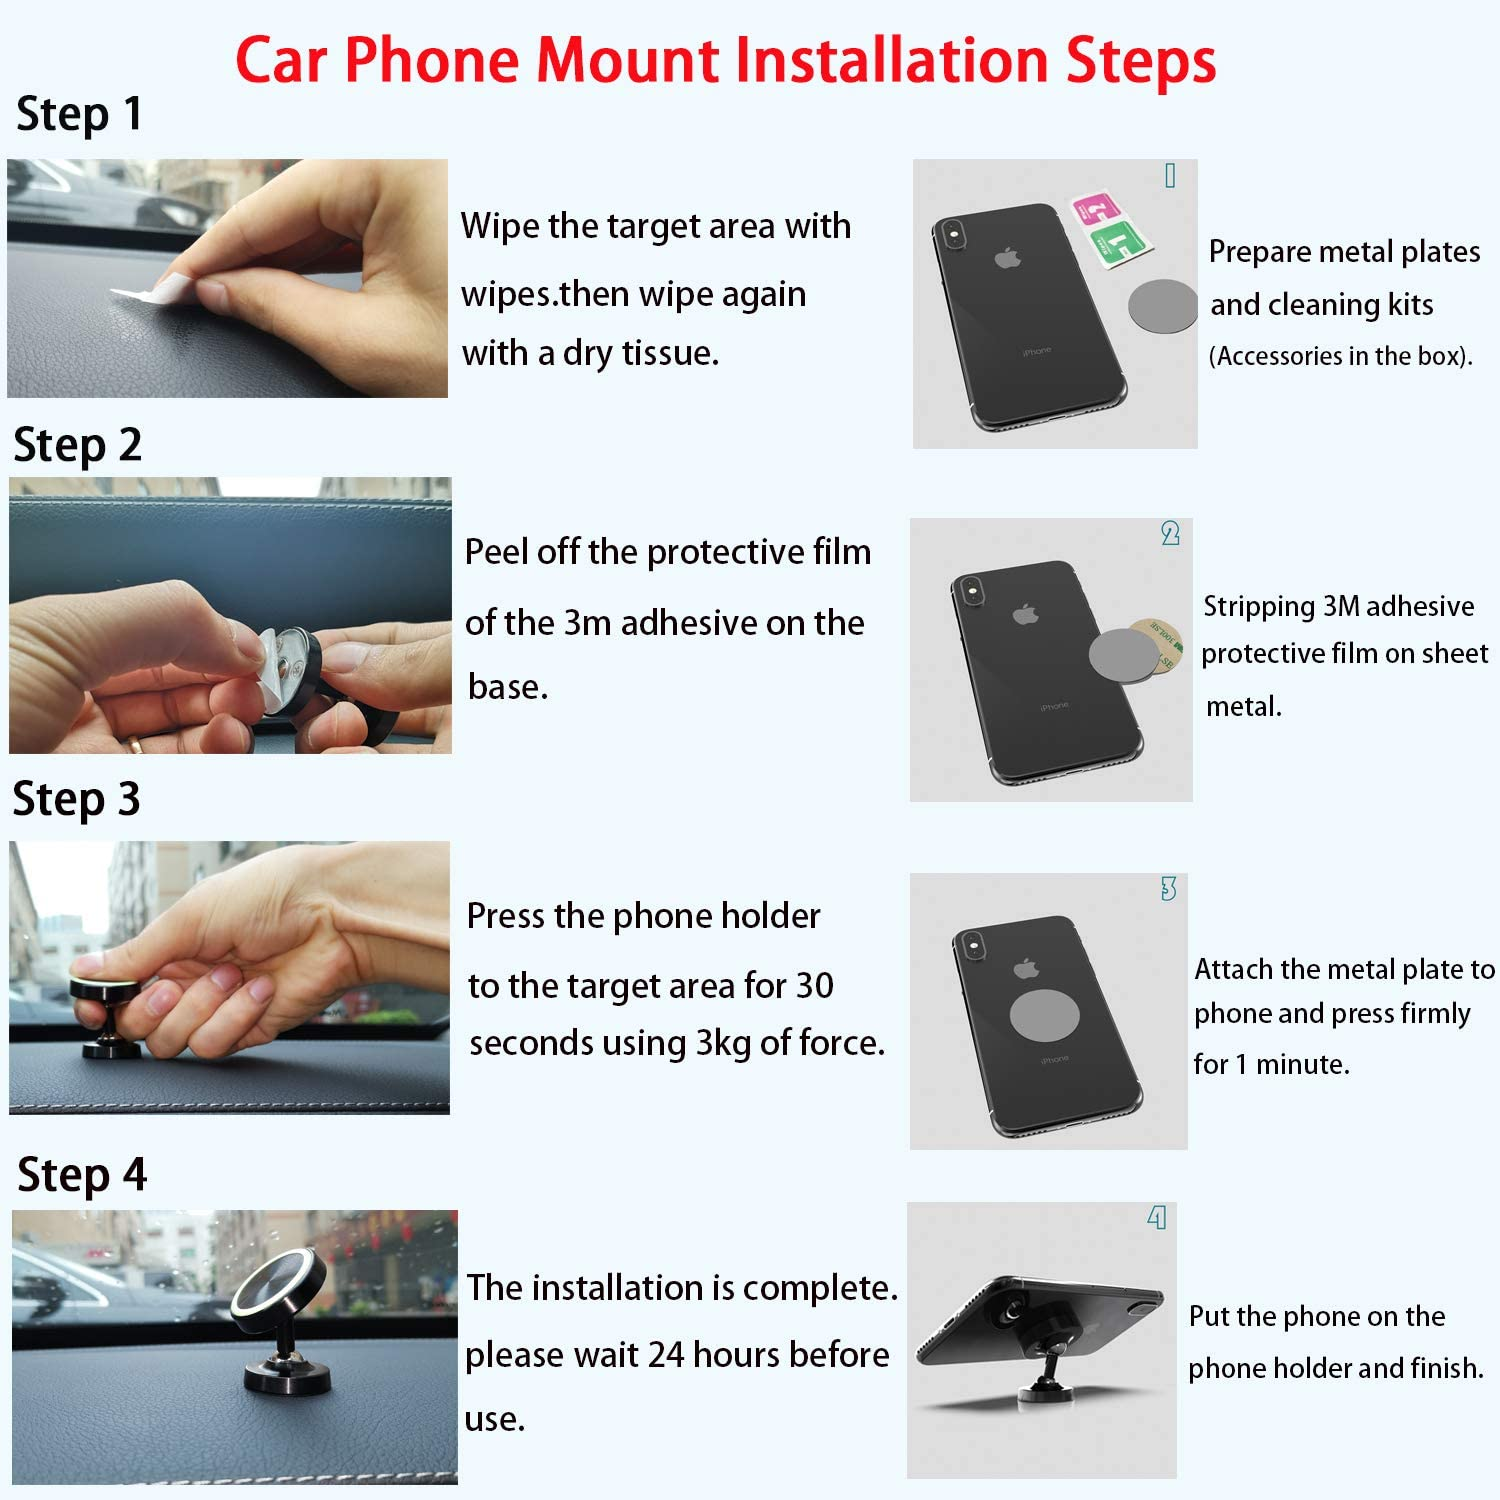 Magnetic Car Phone Holder for Dashboard,Snowwicase Double 360 Degrees Rotation Phone Car Mount with a Super Strong Magnet,Compatible iPhone Xs Max XR X 8 Plus Galaxy S9 S10 Note 8 Pixel 3 New Black